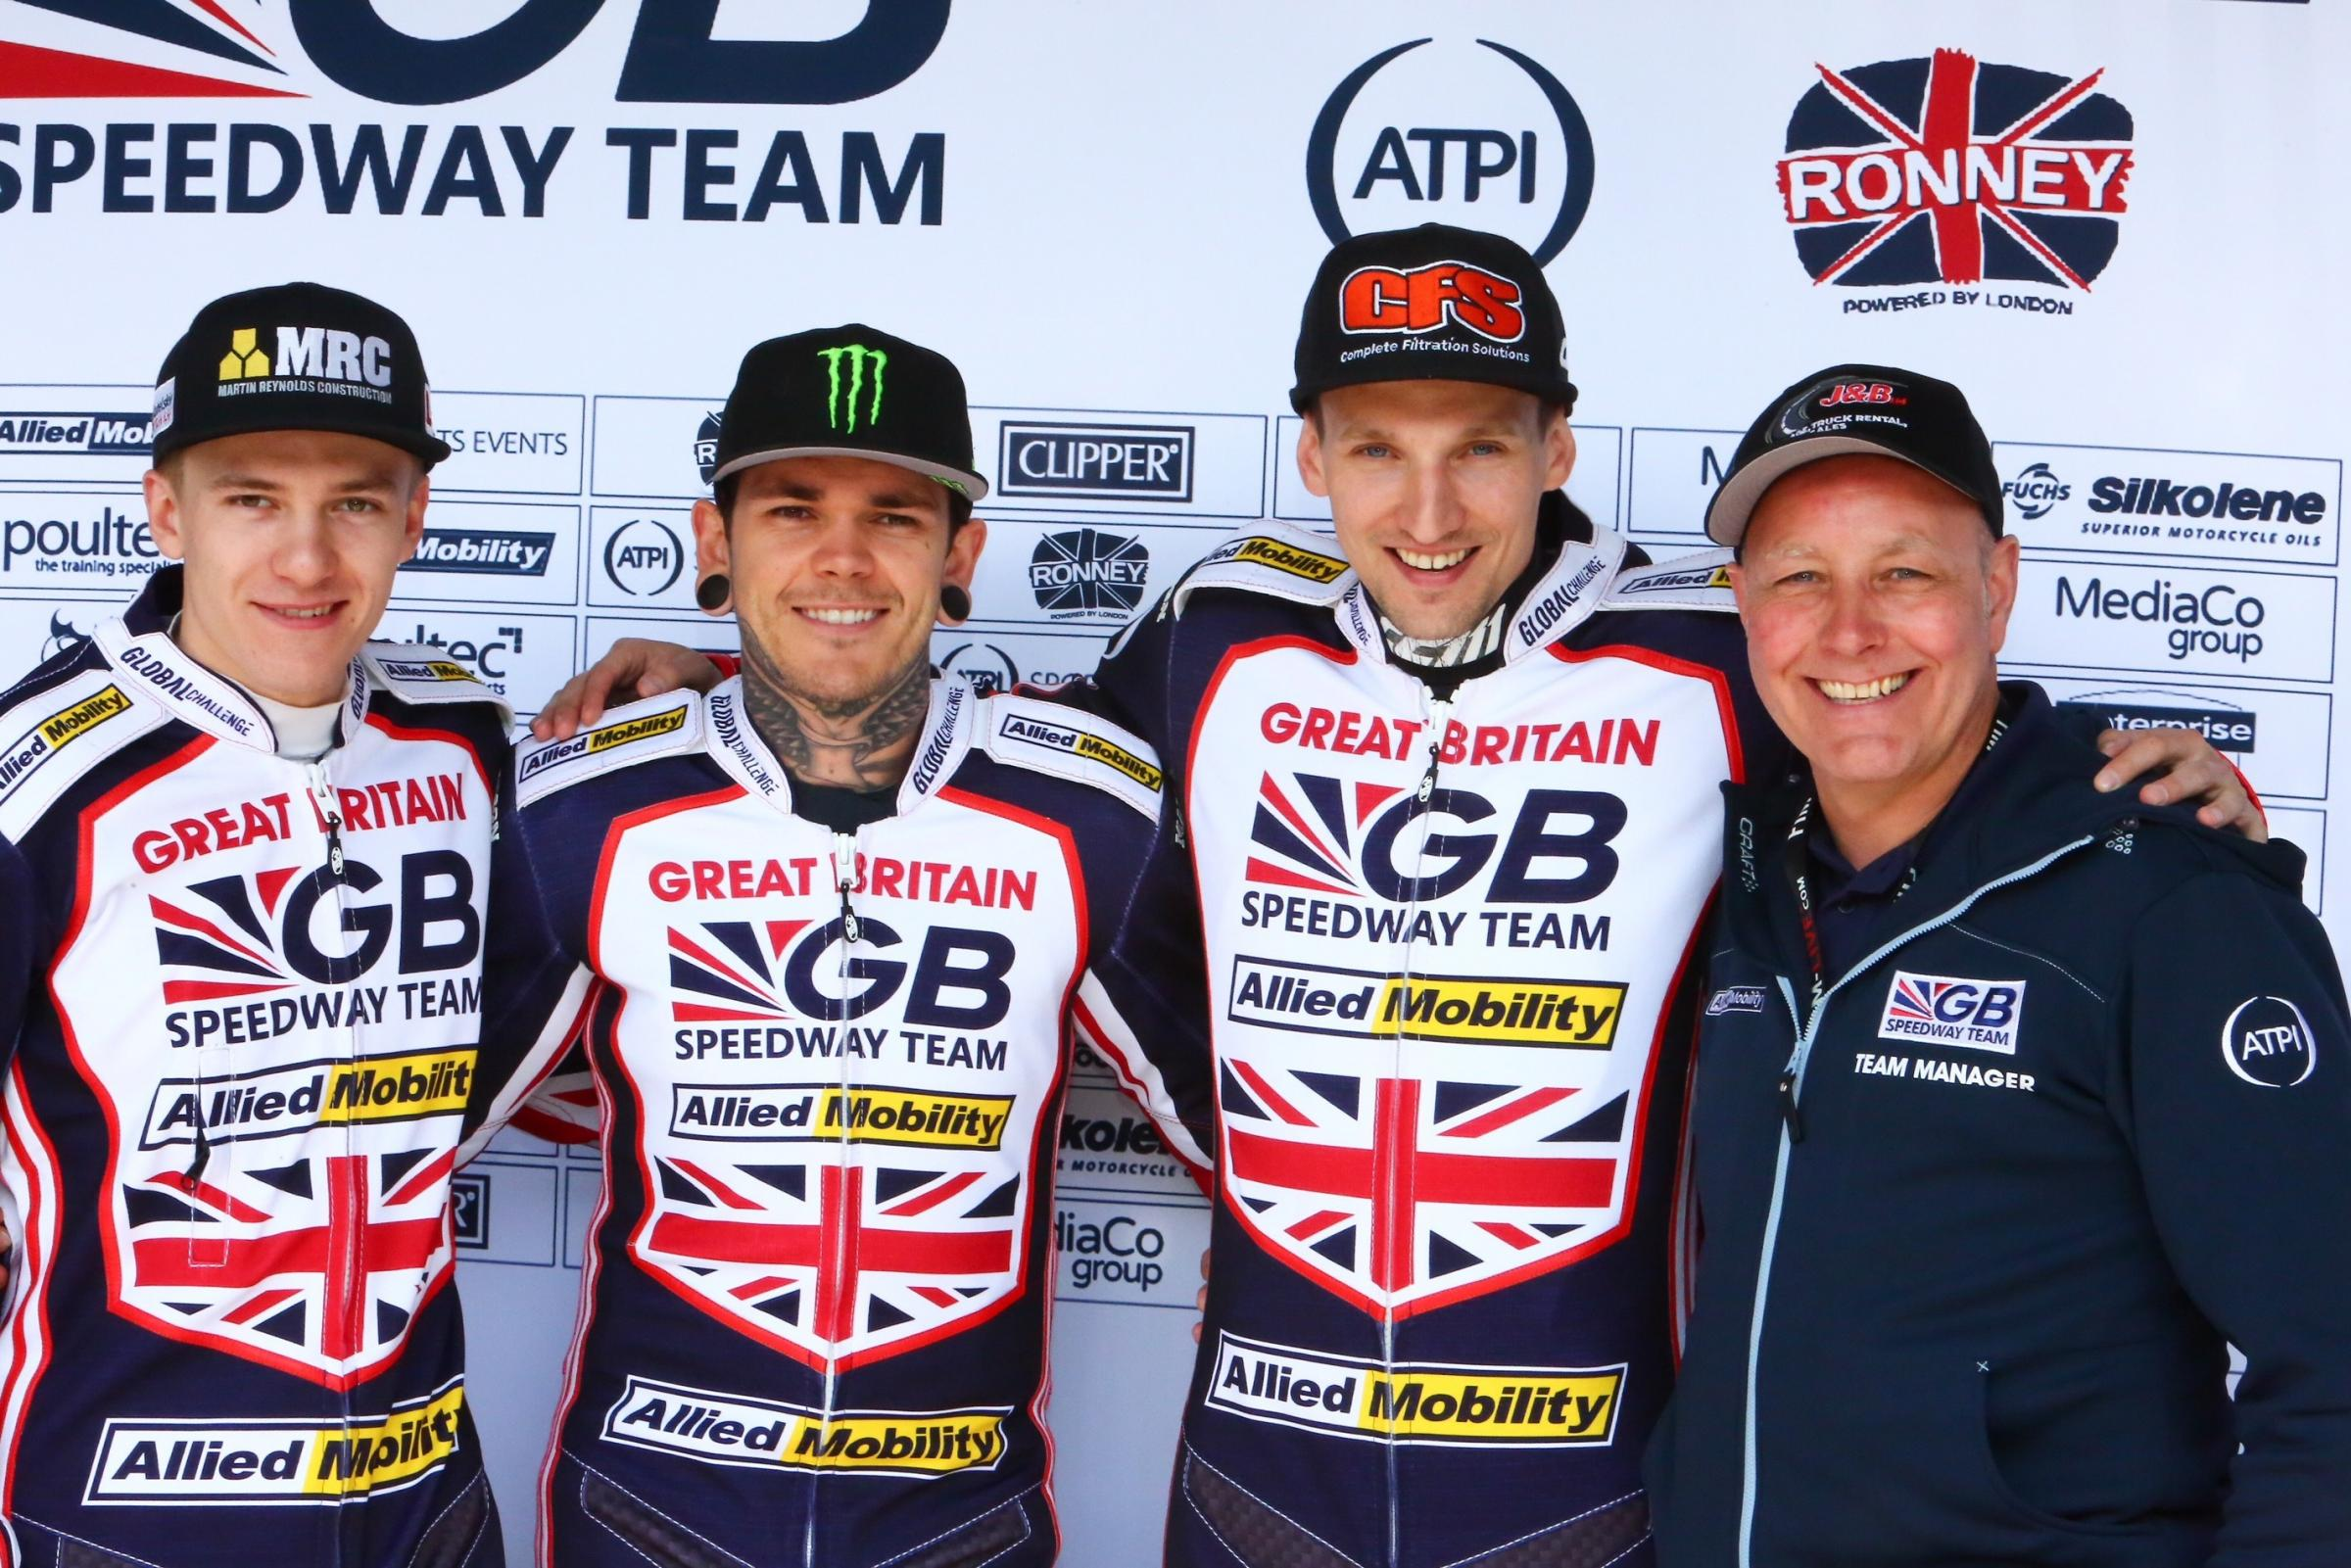 Alun Rossiter and his GB team of Robert Lambert, Craig Cook and Tai Woffinden